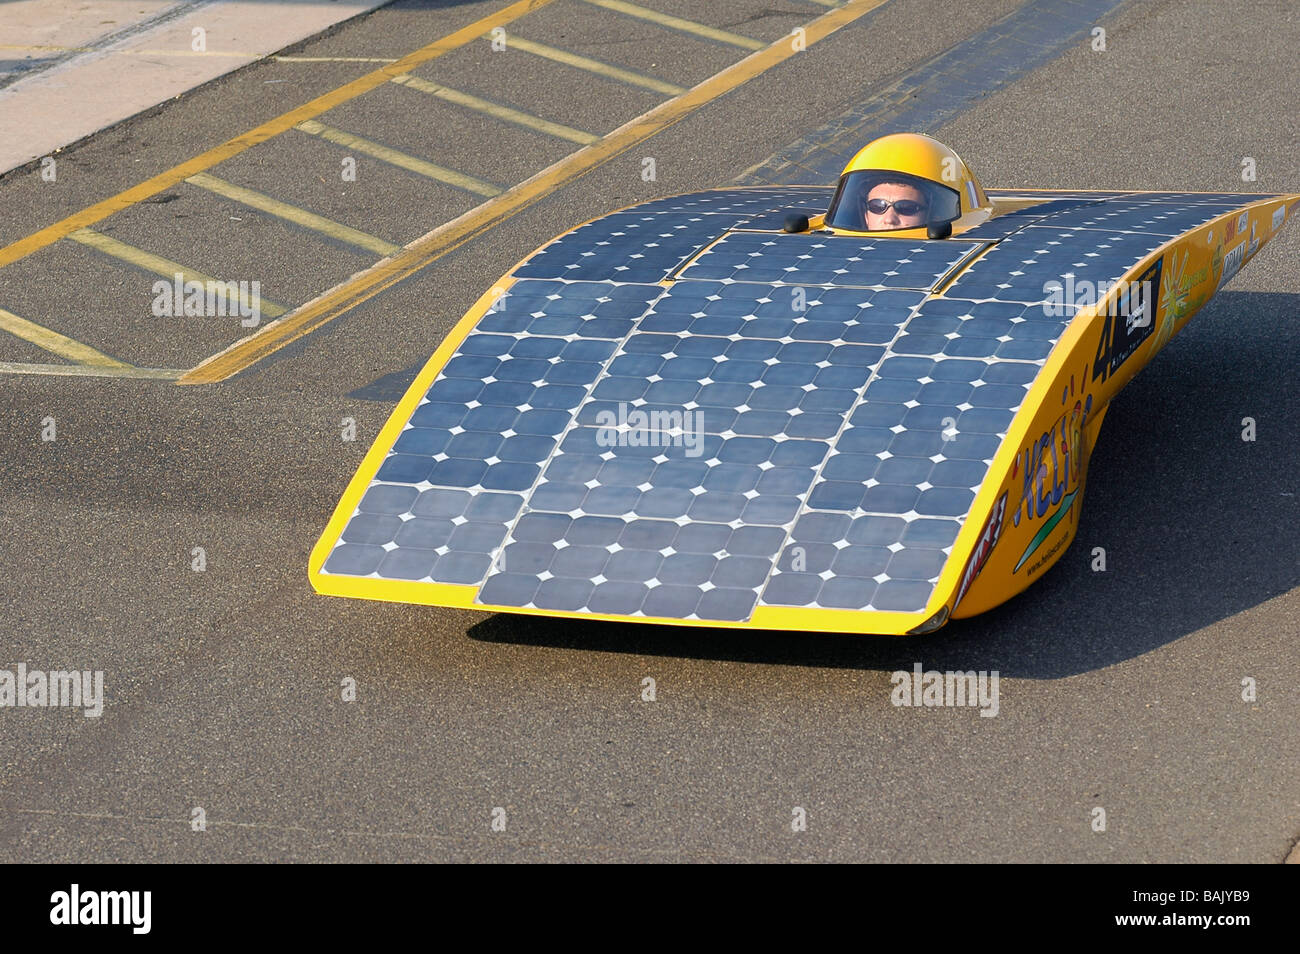 Solar cars taking part in the qualification rounds of the ...